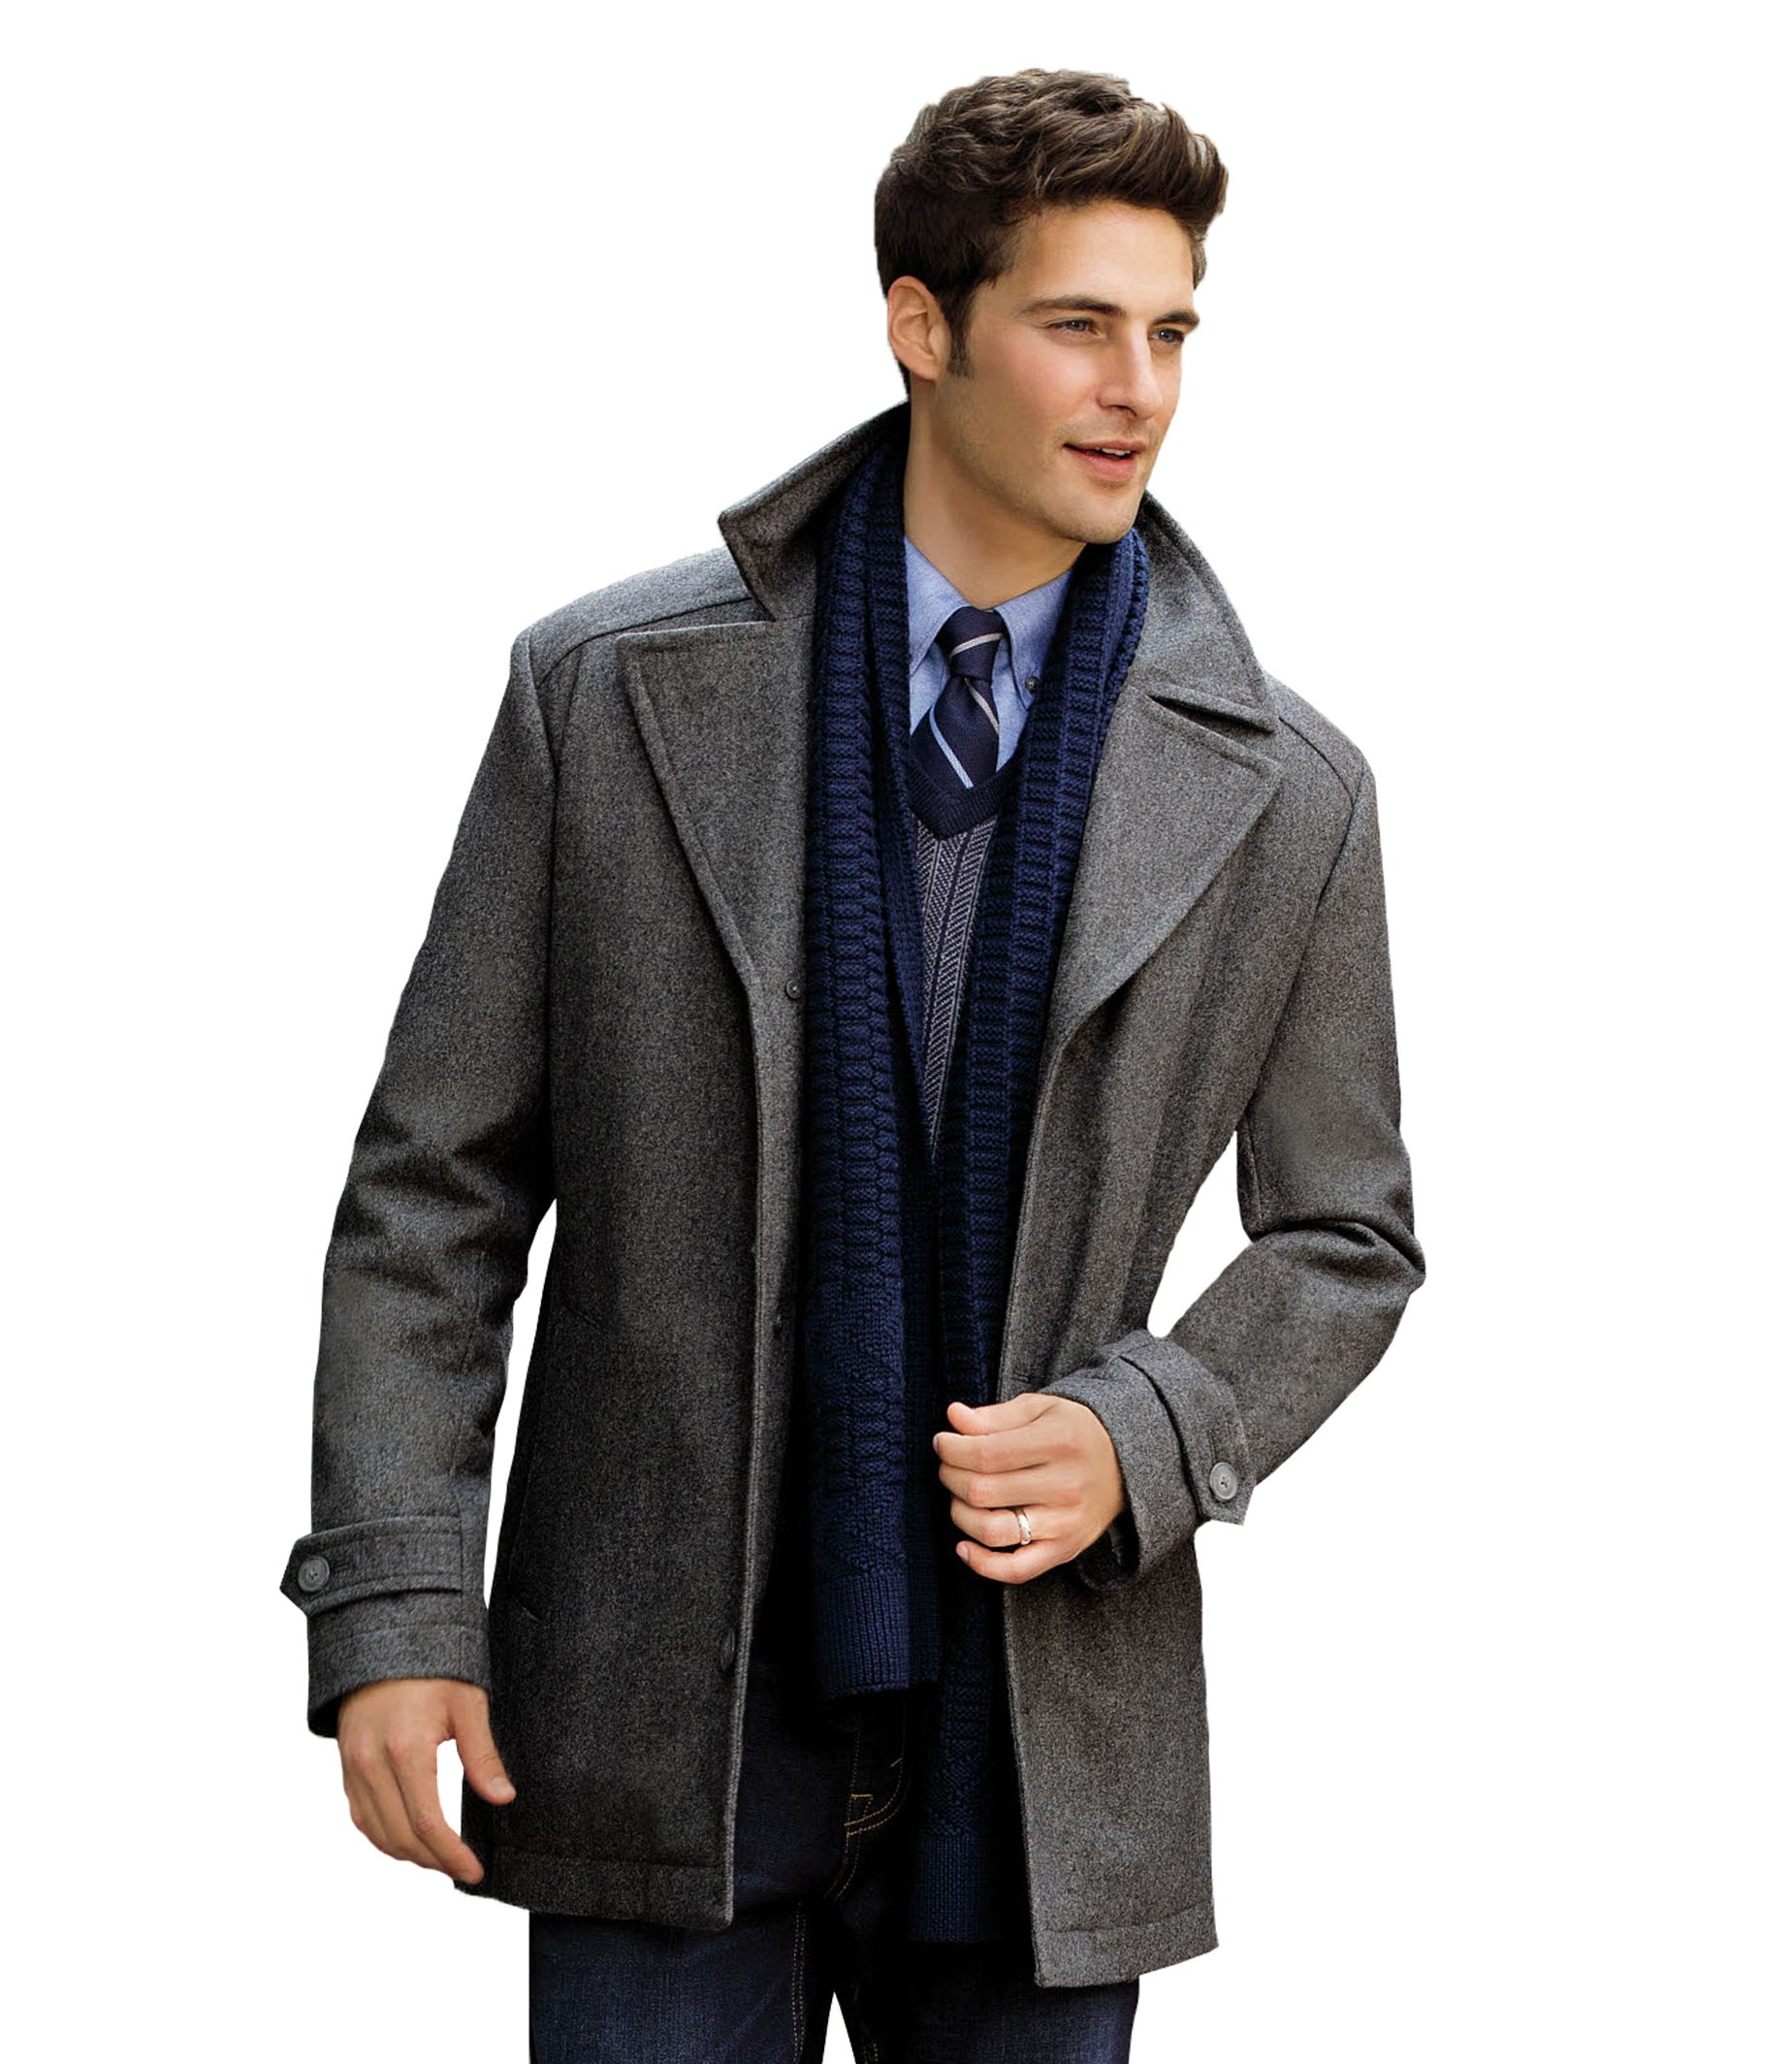 Shop for men's sport coats online at Men's Wearhouse. Browse hundreds of top designer sport jacket styles & selection for men. FREE Shipping on orders $99+. Suits Blazers & Sport Coats Dress Shirts Casual Shirts Pants & Shorts Jeans Vests Ties Sweaters Tuxedos & Formalwear Outerwear Custom Clothing Big & Tall Fit Guide Sale.